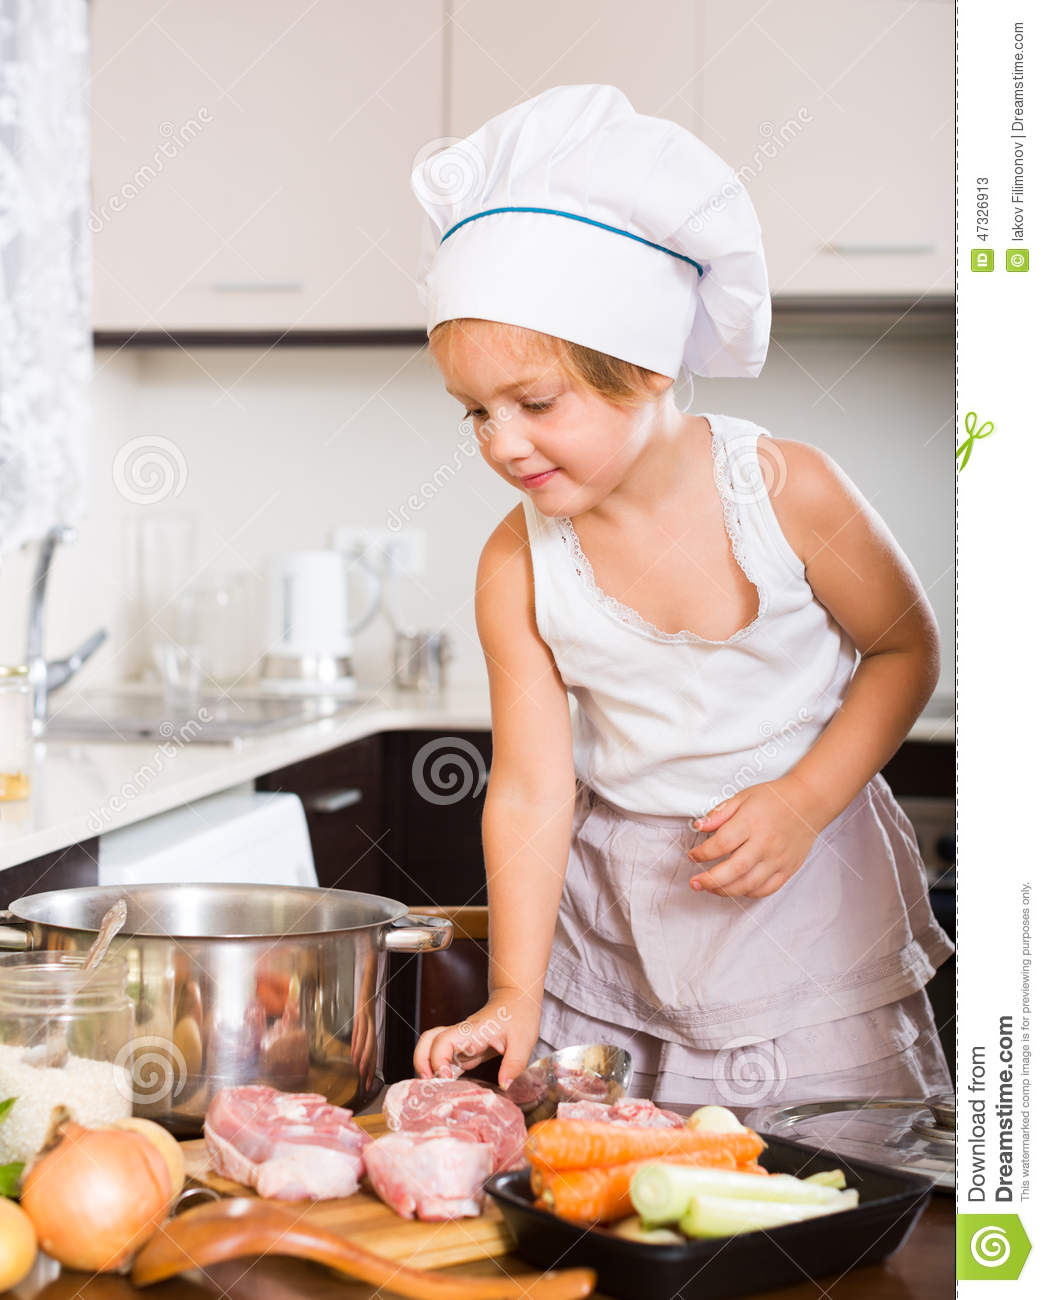 Baby Girl Cooking With Meat Royalty-Free Stock Photography